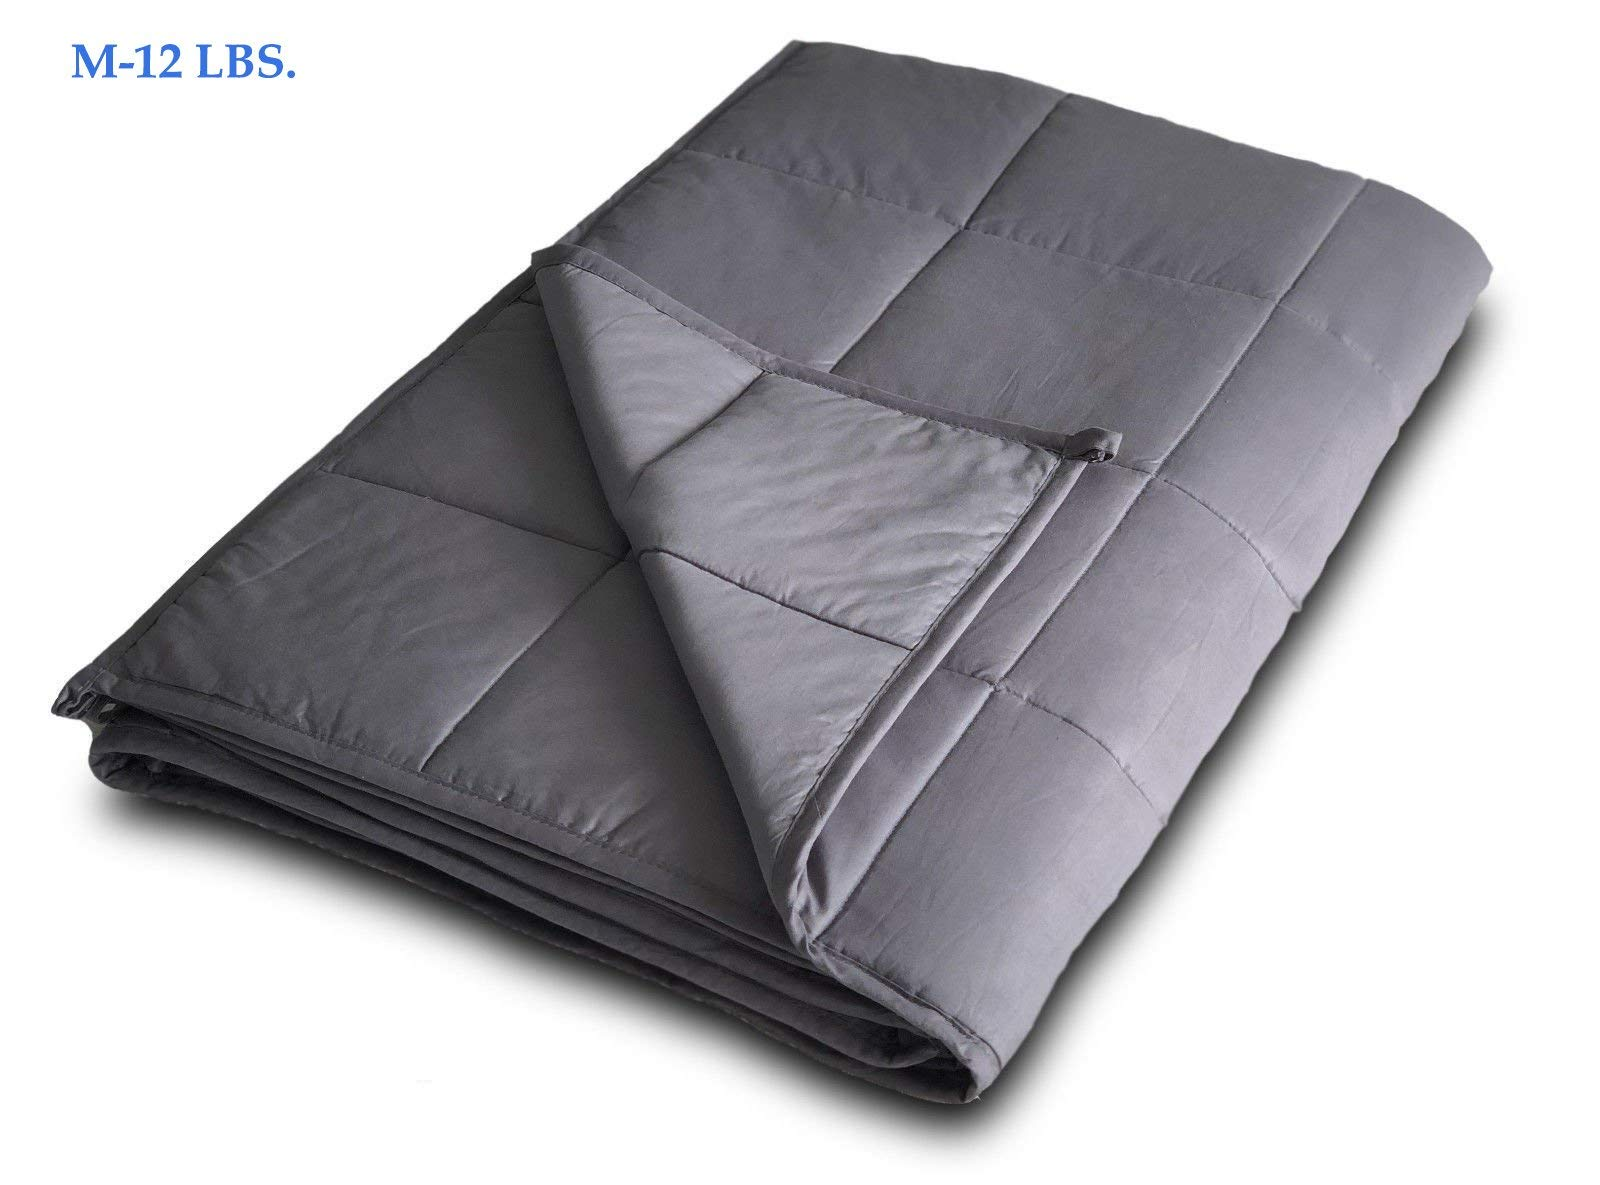 TechFaith Weighted Blanket for Relaxation Adults or Kids, Great Gift Idea Two Sizes and Weights, Sleep Longer and Better (M: 48 x 72, 12)